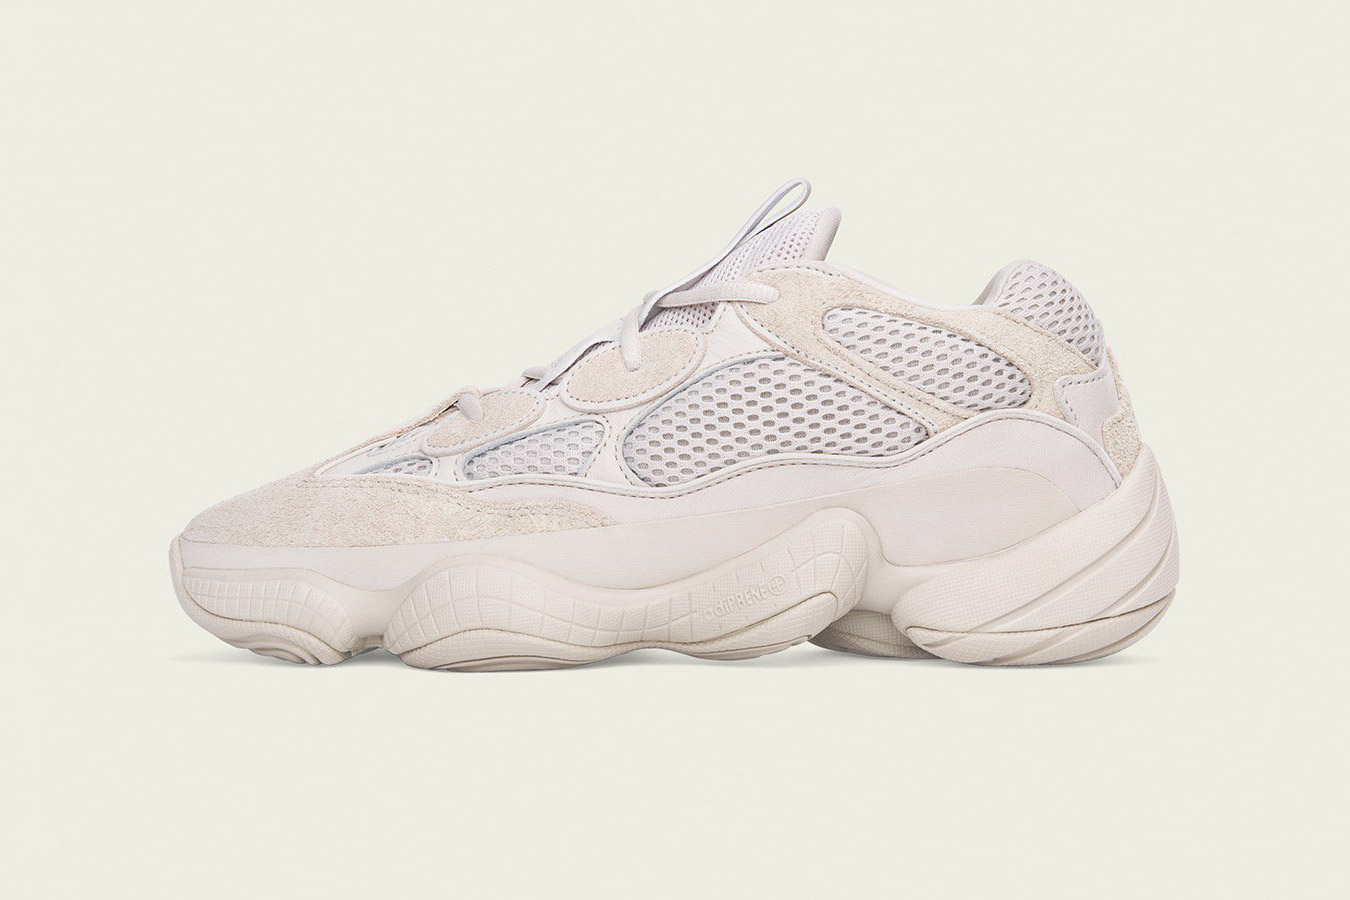 c5bfc8c2d20 Yeezus Is Back Once Again with the adidas YEEZY Desert Rat 500 Blush ...